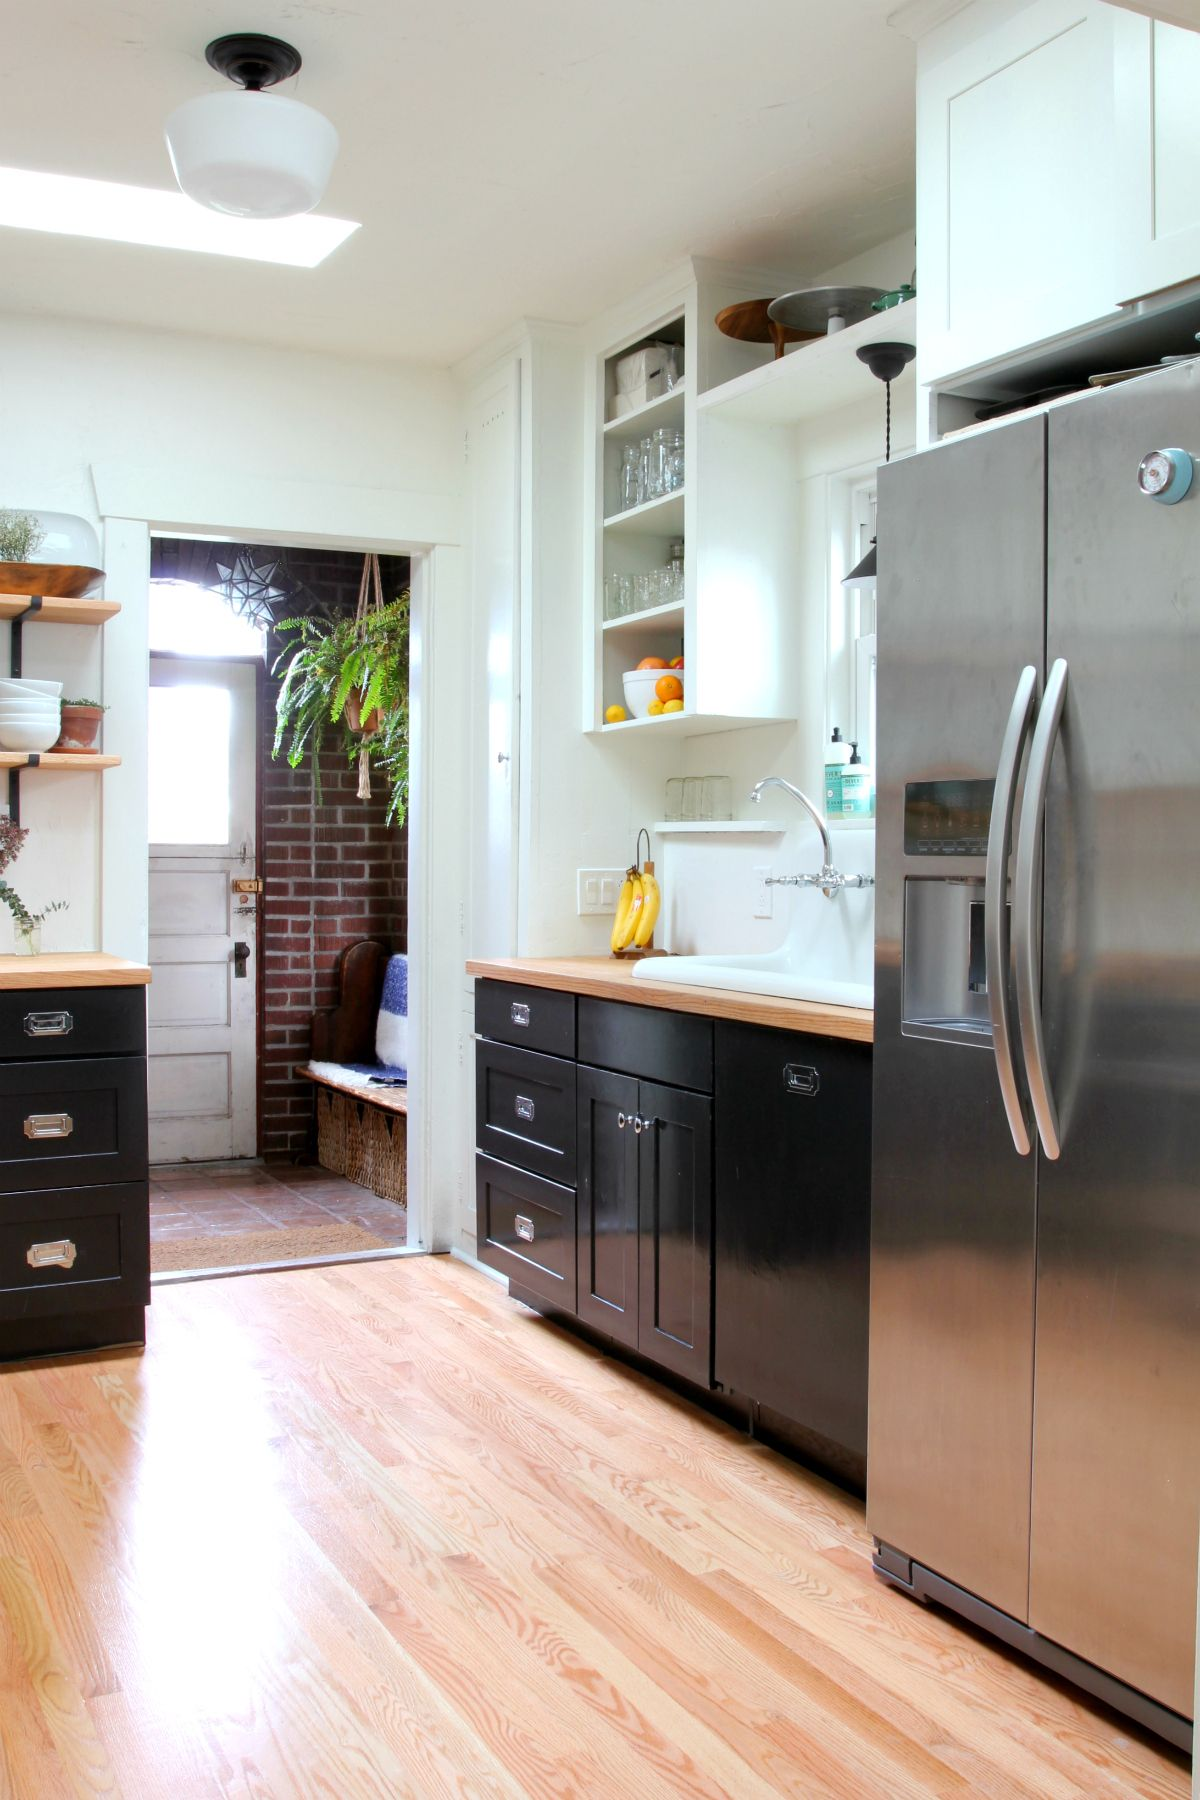 The Grit and Polish - Dexter Kitchen Remodel south | Kitchen | Pinterest